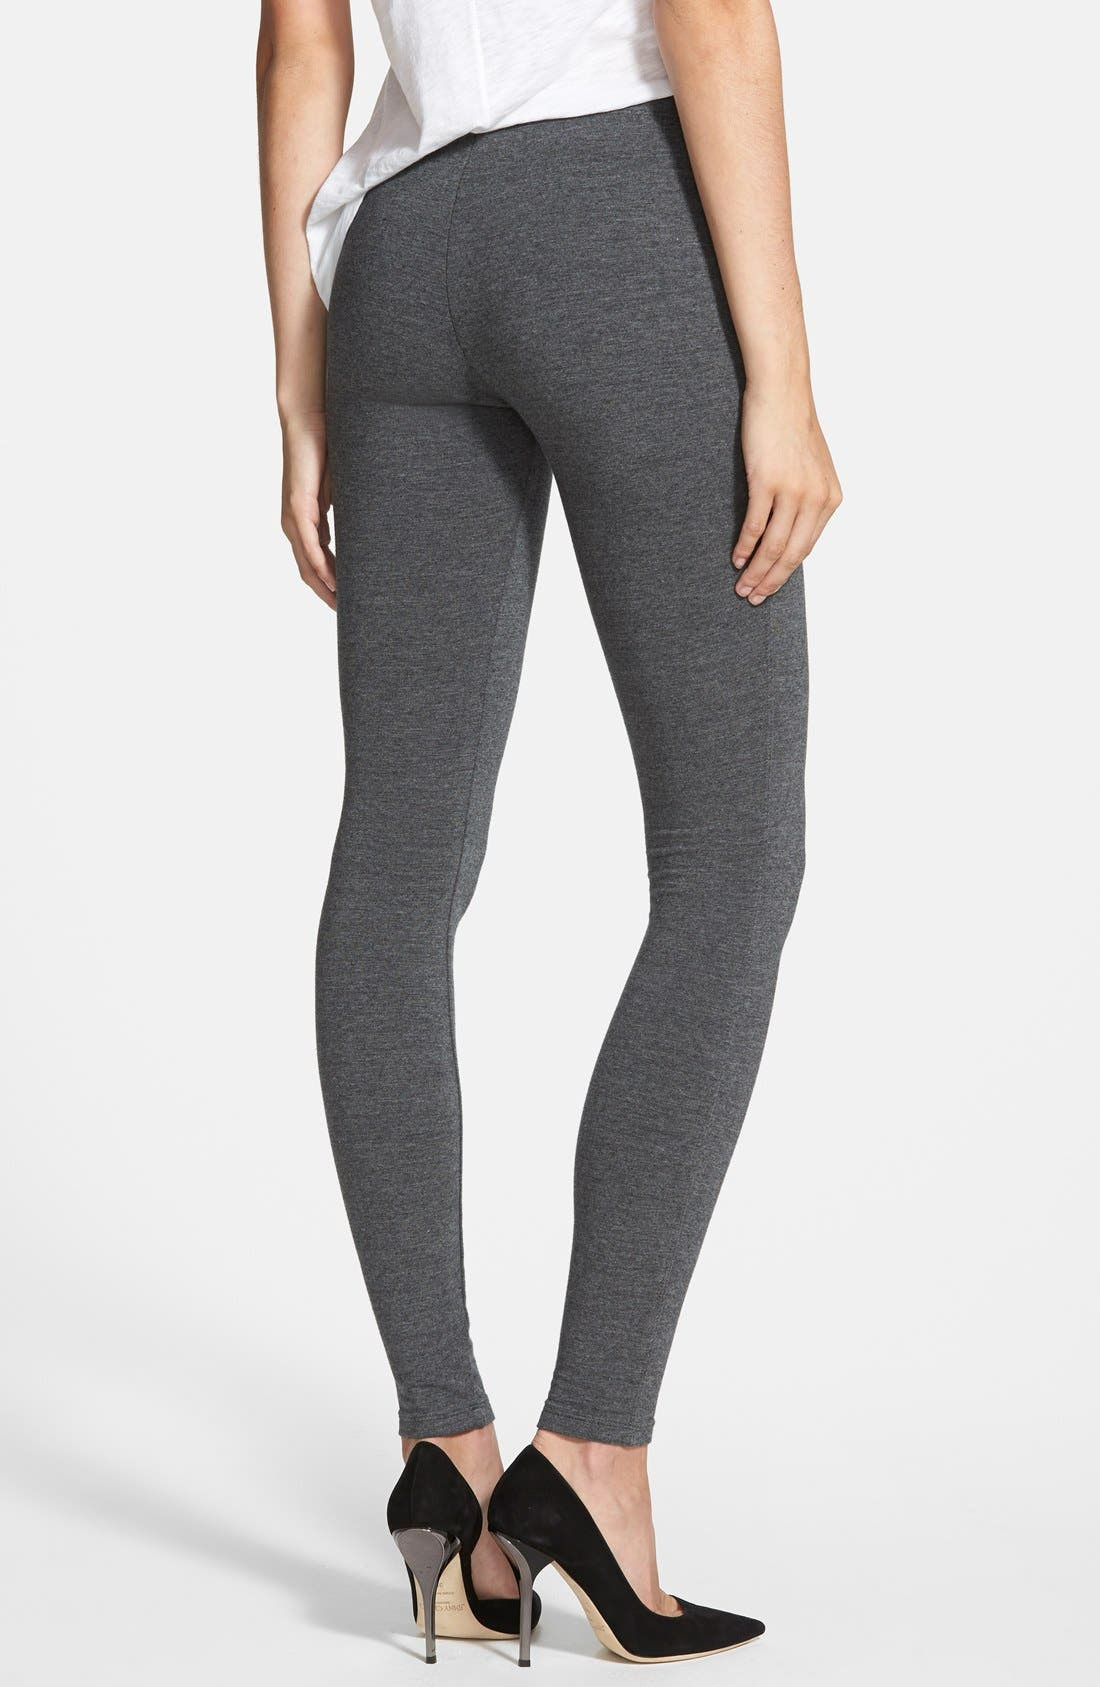 French Terry Leggings,                             Alternate thumbnail 2, color,                             Charcoal